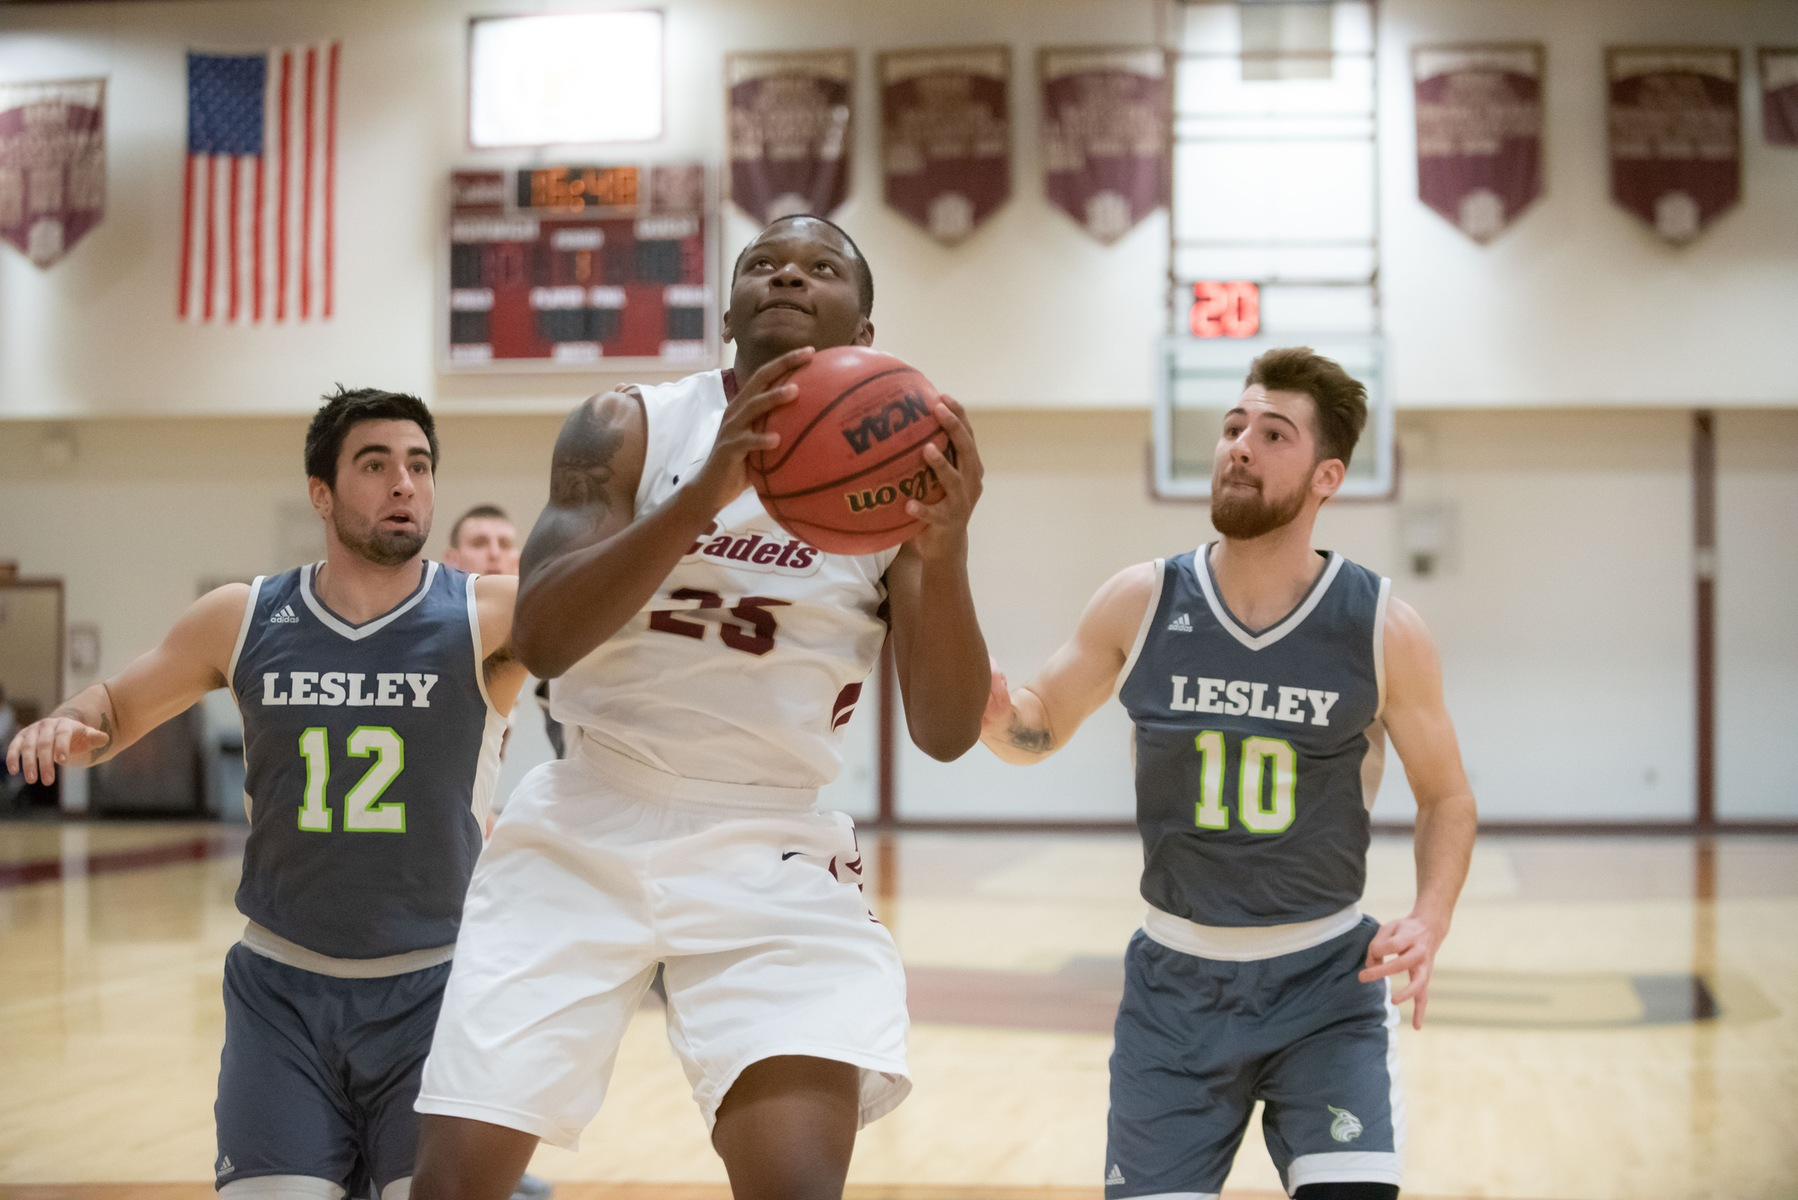 Men's Basketball: Cadets take down Raiders on the road, 91-83